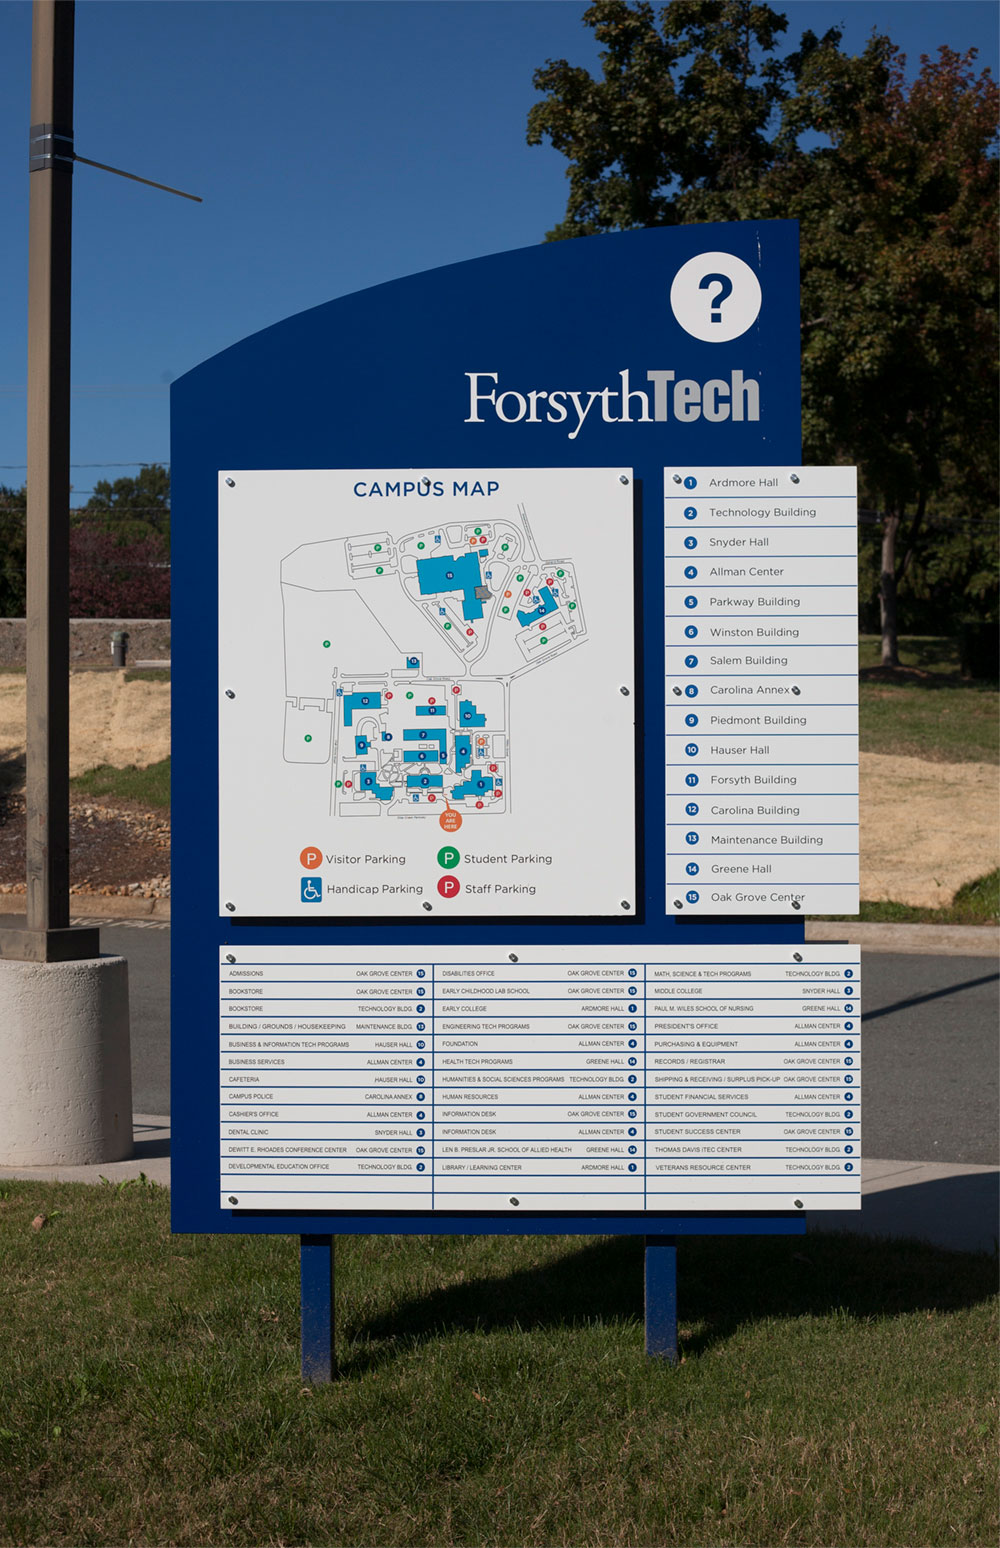 Forsyth Tech Main Campus Map.Fifth Letter